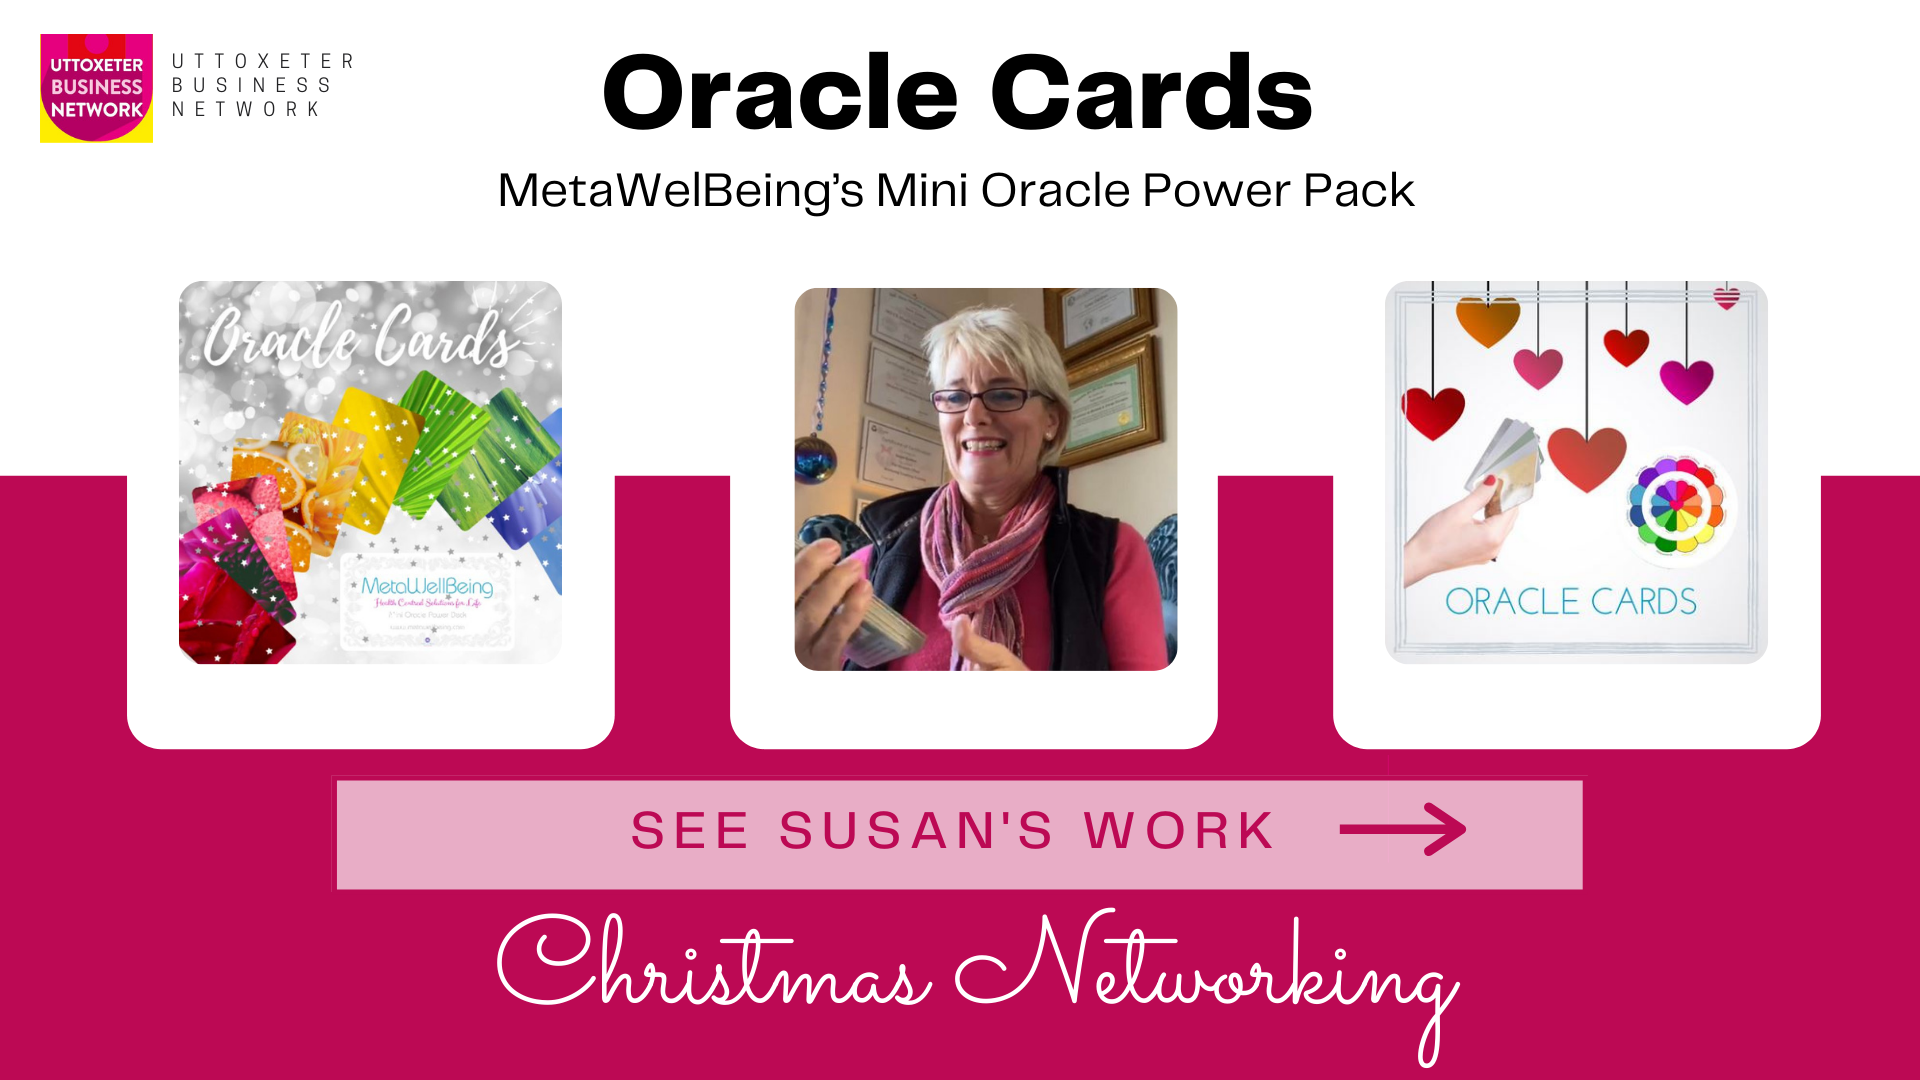 Susans Oracle Cards - christmas networking